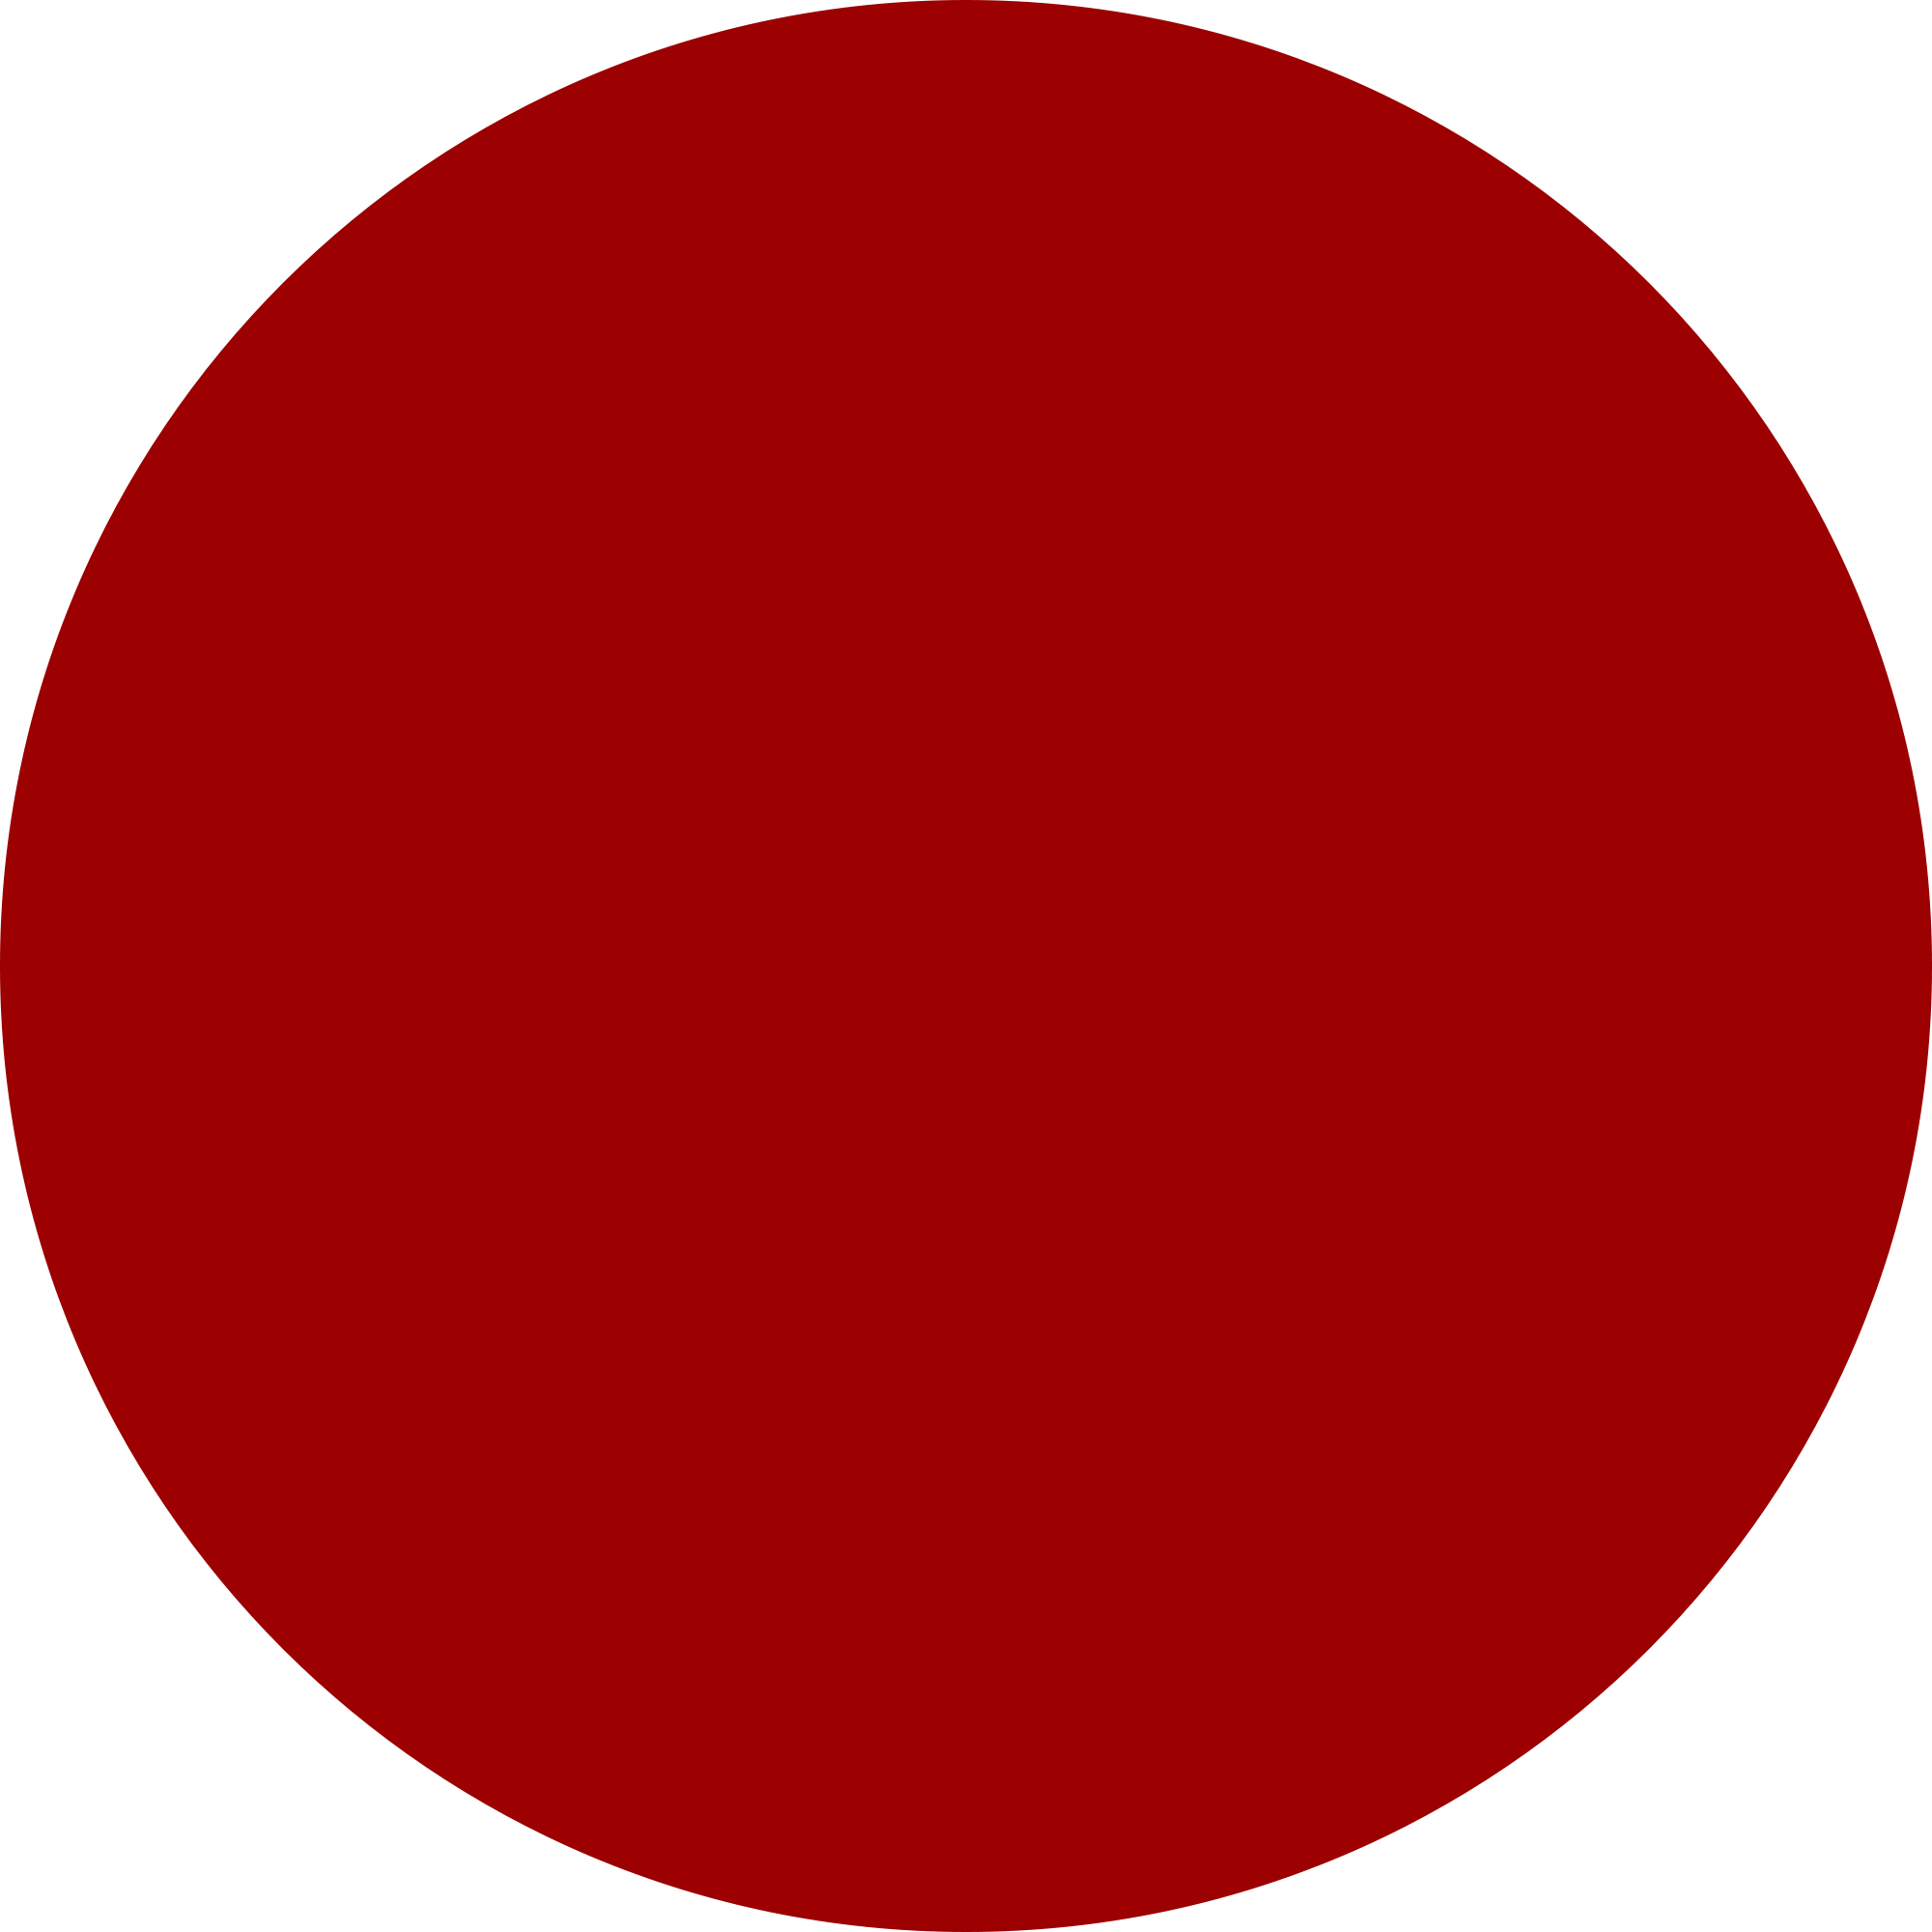 Free Red Oval Png, Download Free Clip Art, Free Clip Art on.